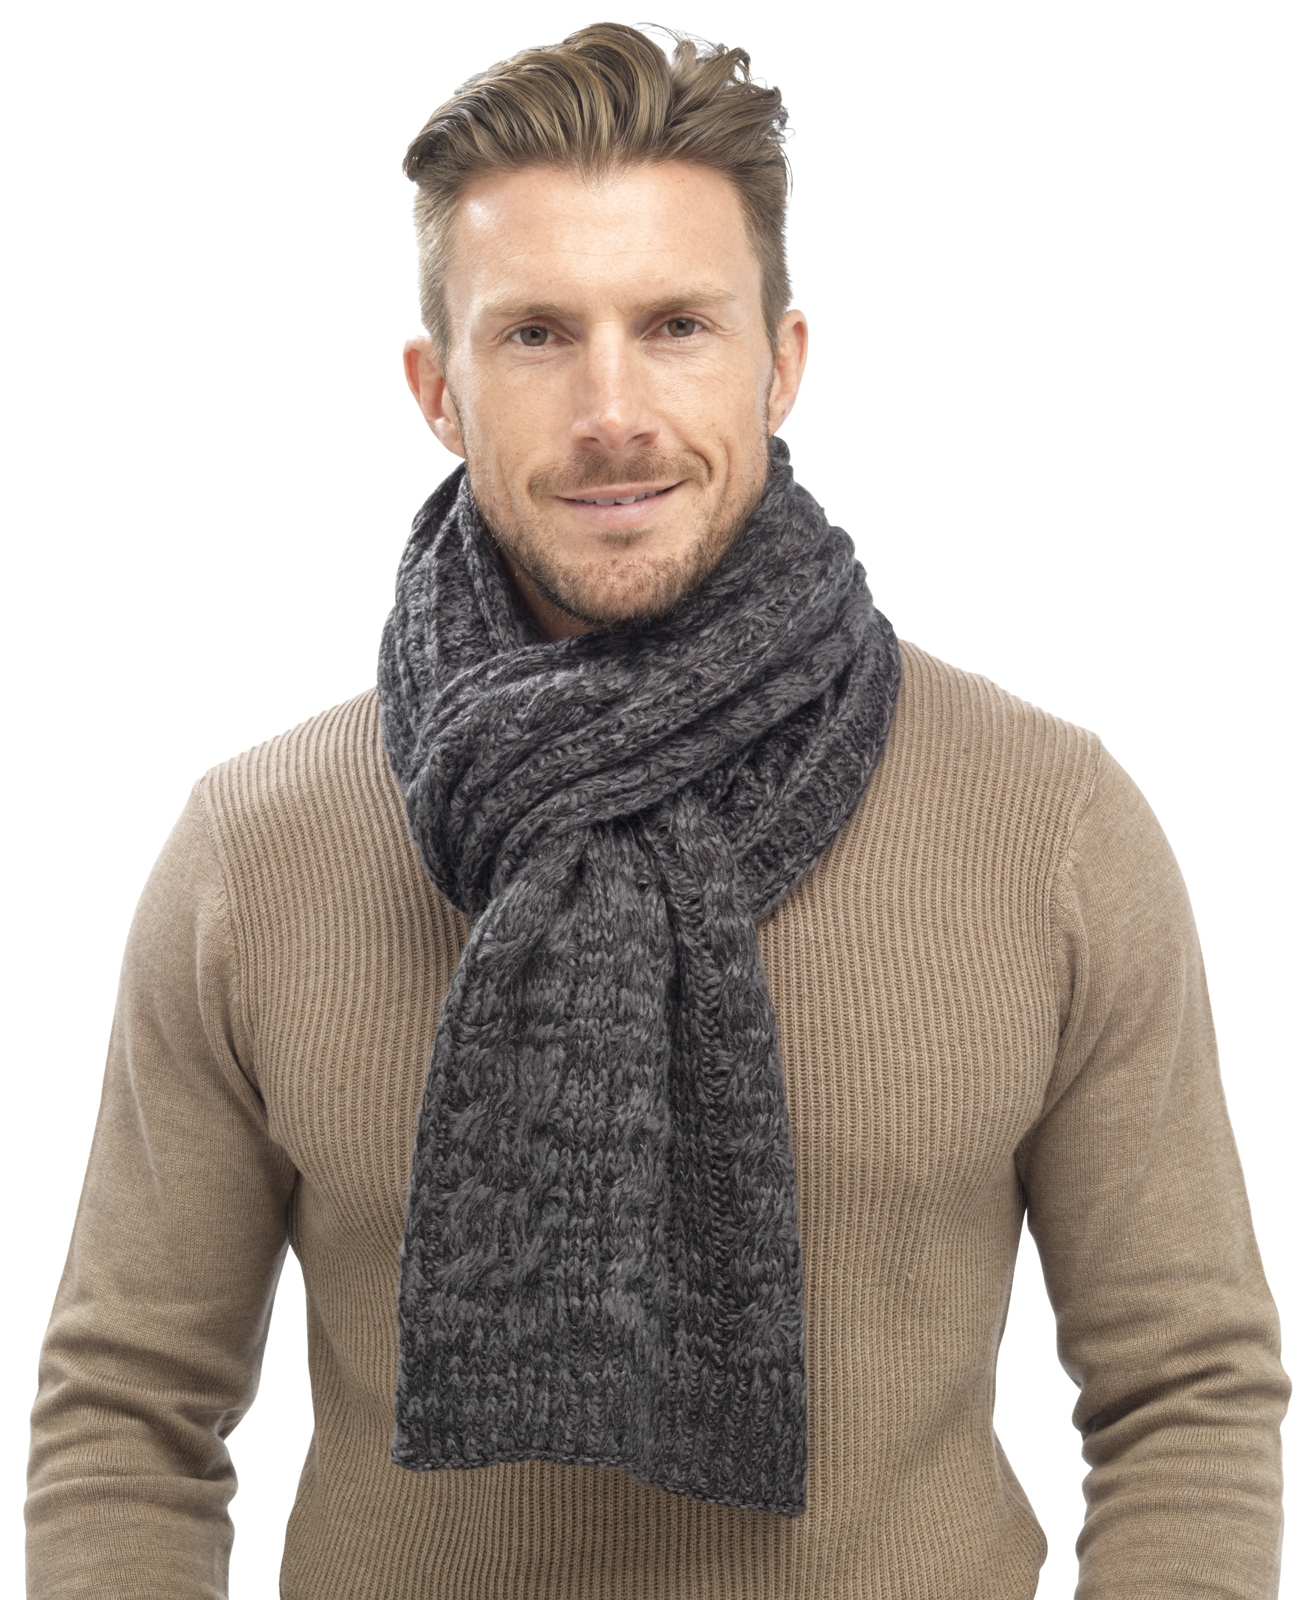 Knitting Scarf For Man : Mens luxury fairisle cable knit slouch beanie bobble hat